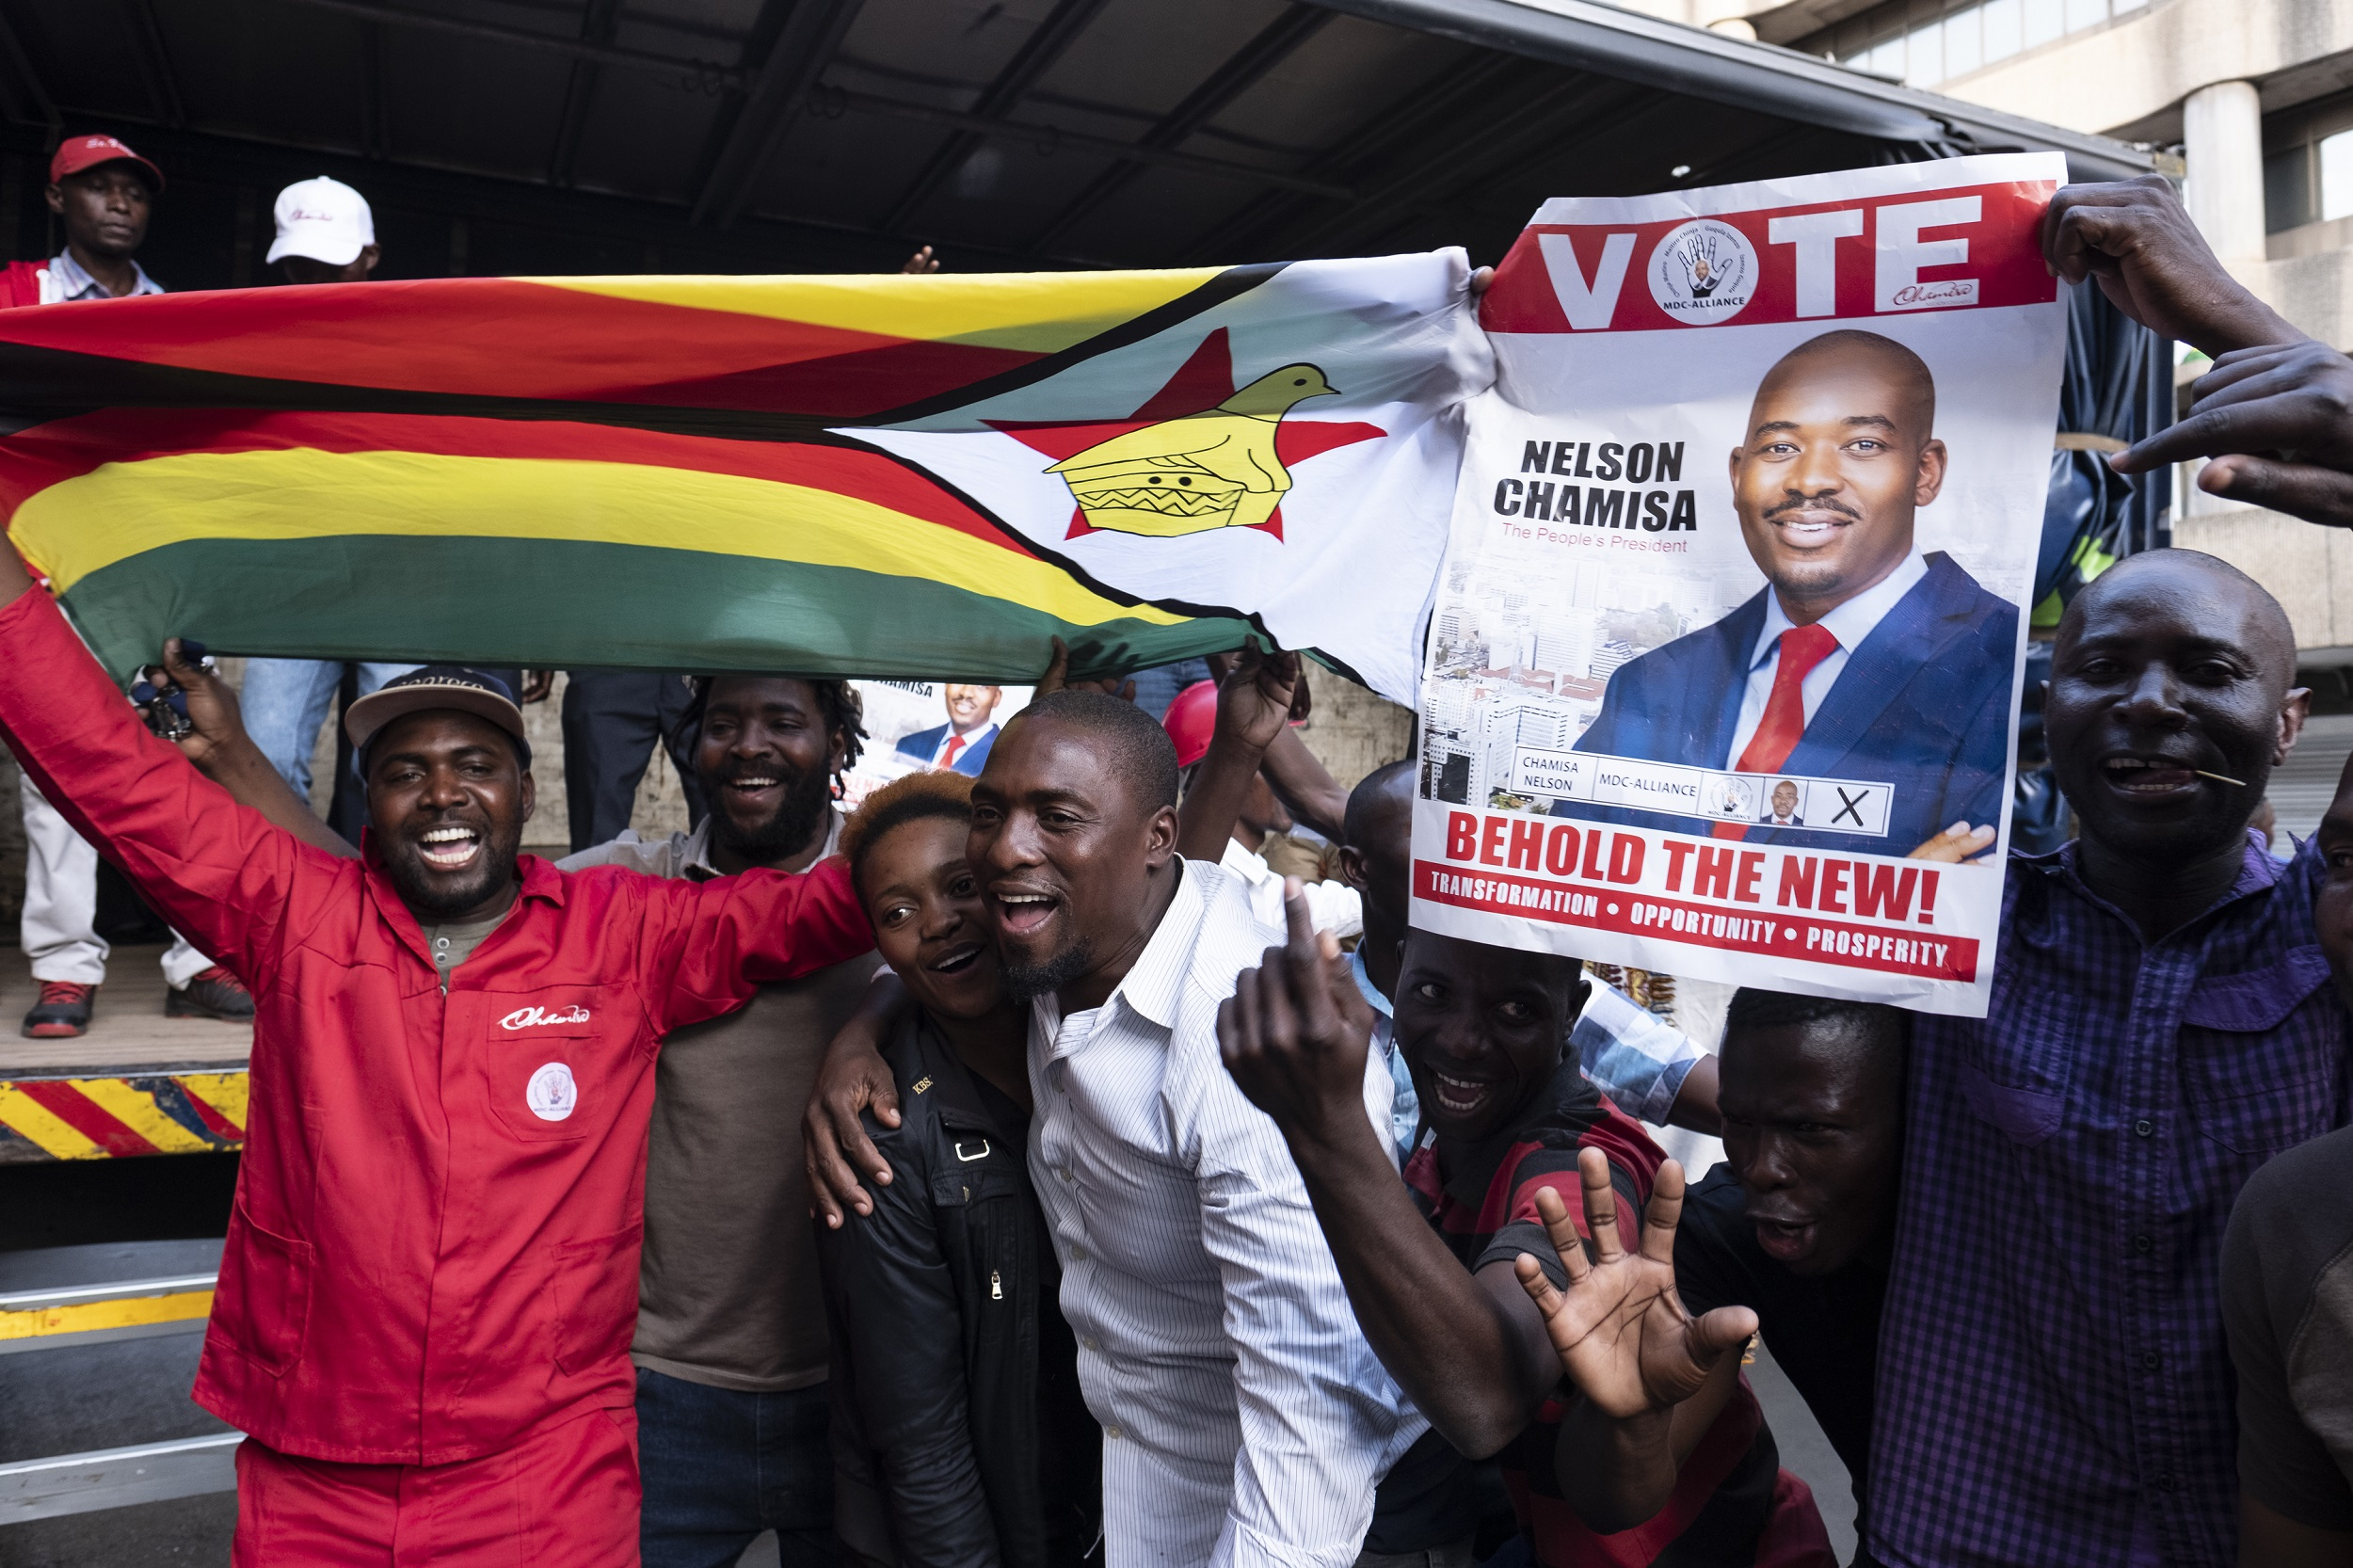 File: Zimbabwe's MDC opposition party launched a legal challenge to President Emmerson Mnangagwa's election victory.